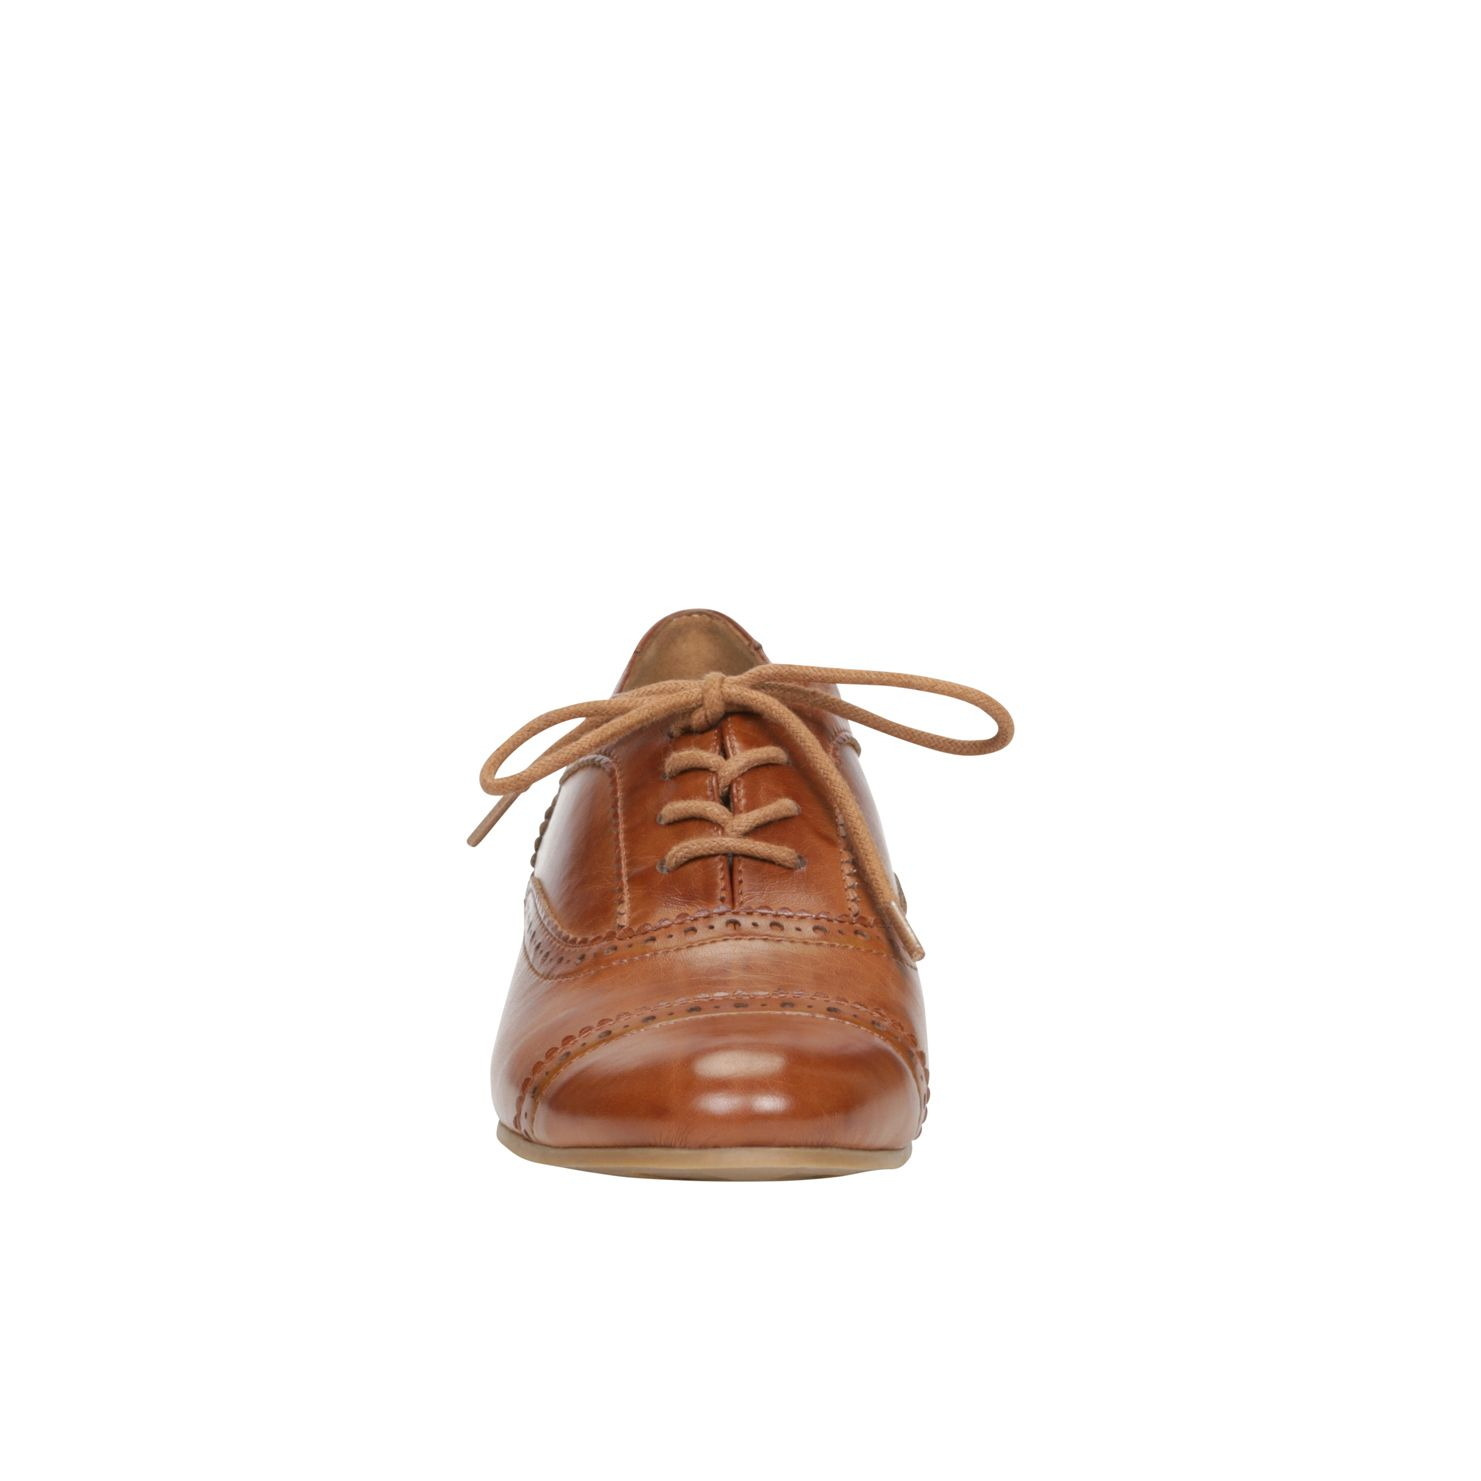 Grummer lace up brogue shoes